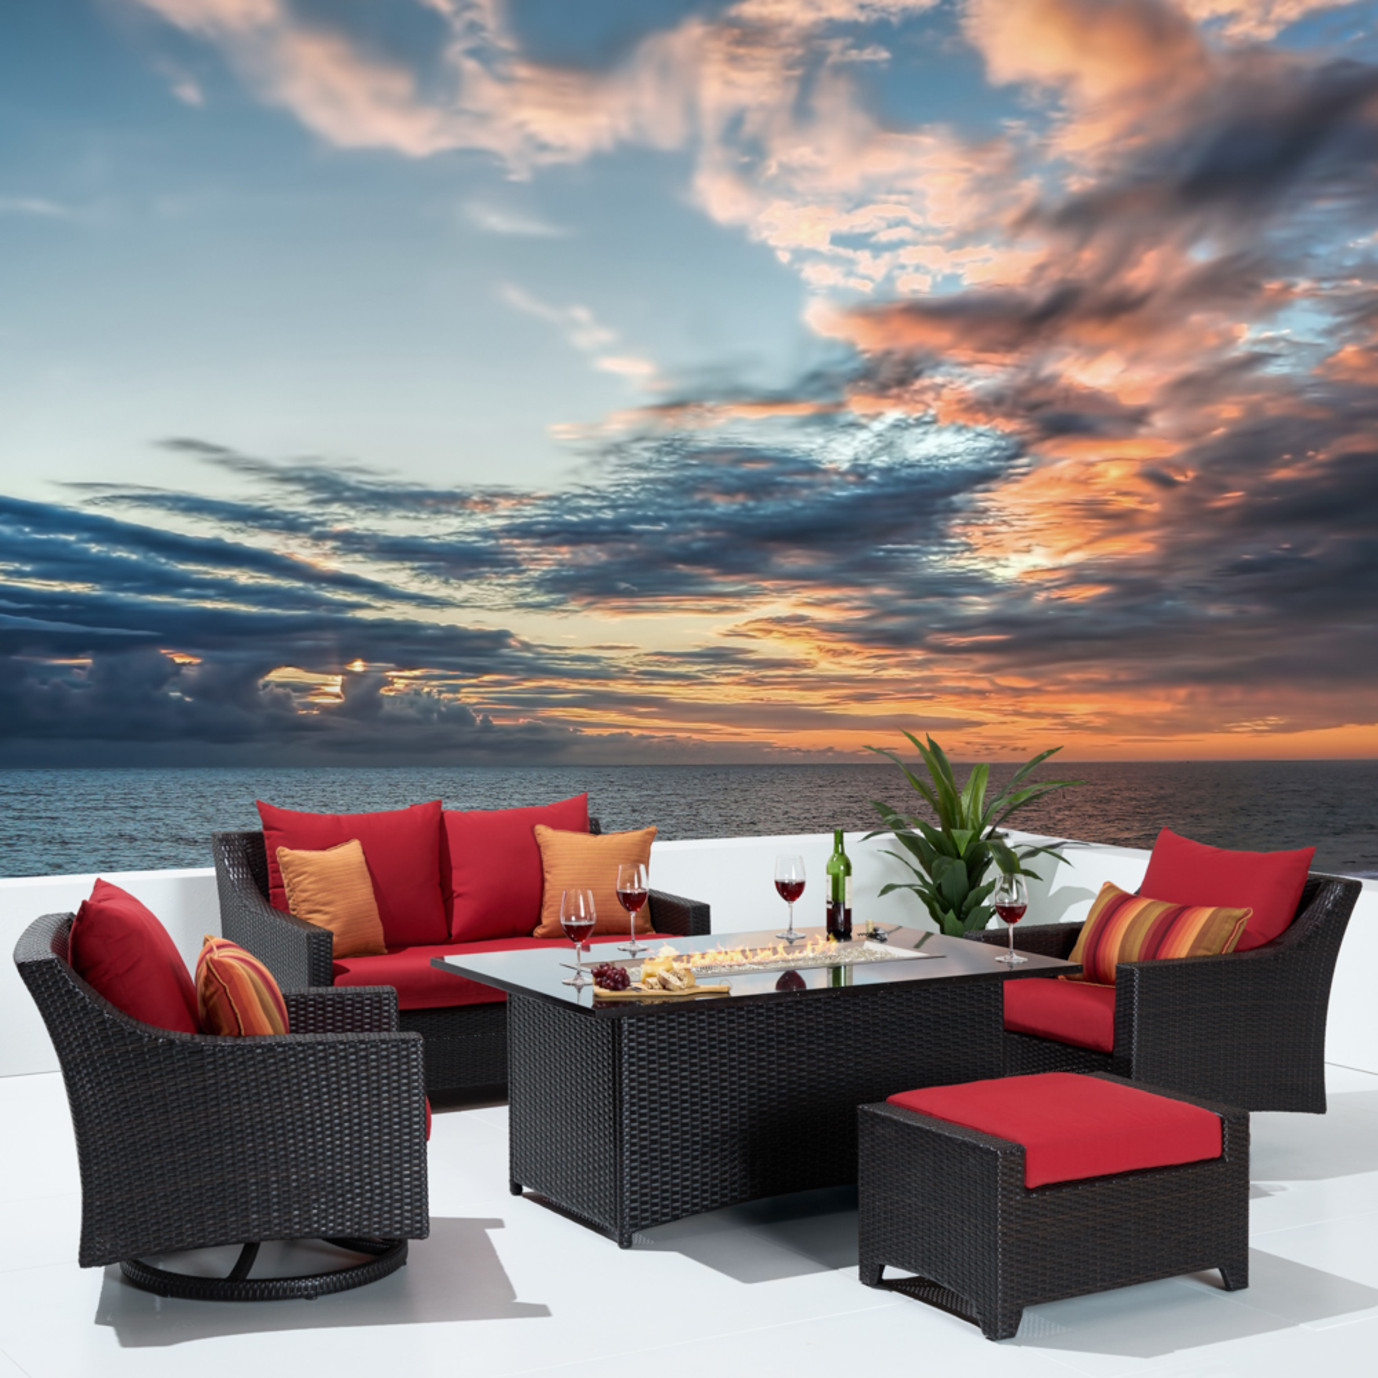 Deco™ 5pc Love & Motion Club Fire Set - Sunset Red